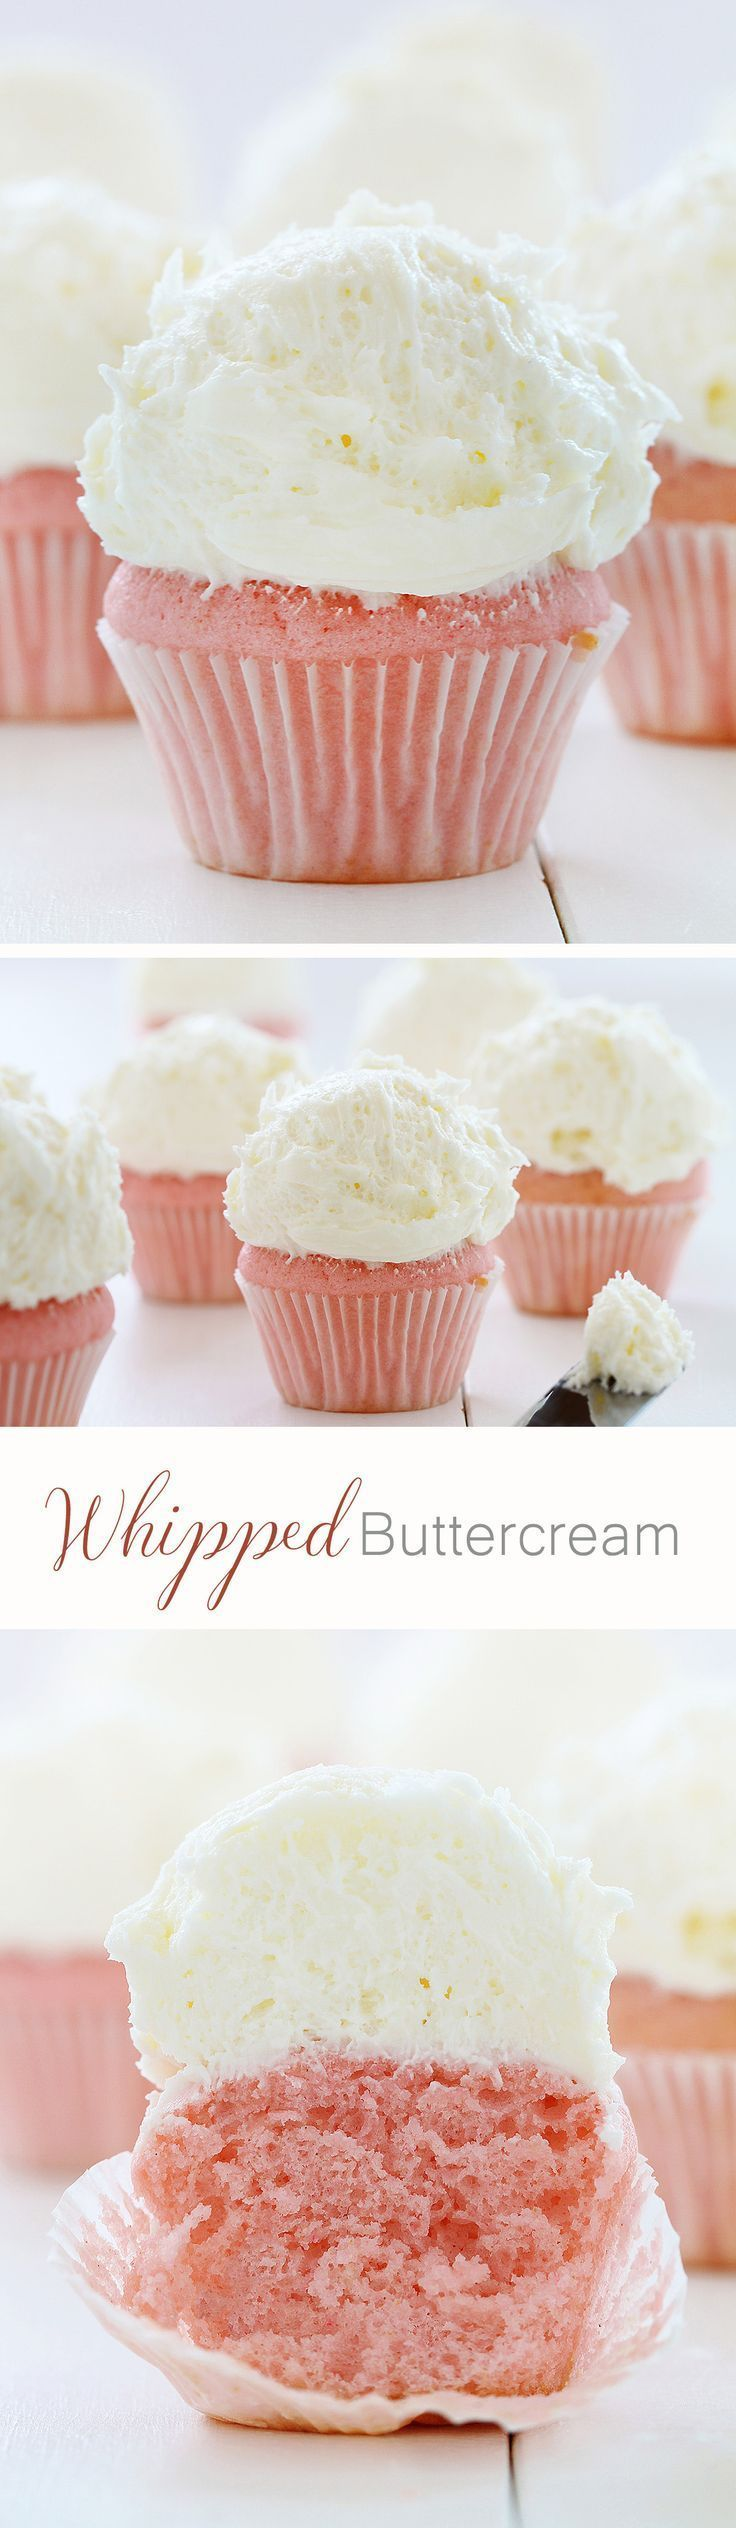 Piled-High Buttercream on Glorious Pink Velvet Cuppies!